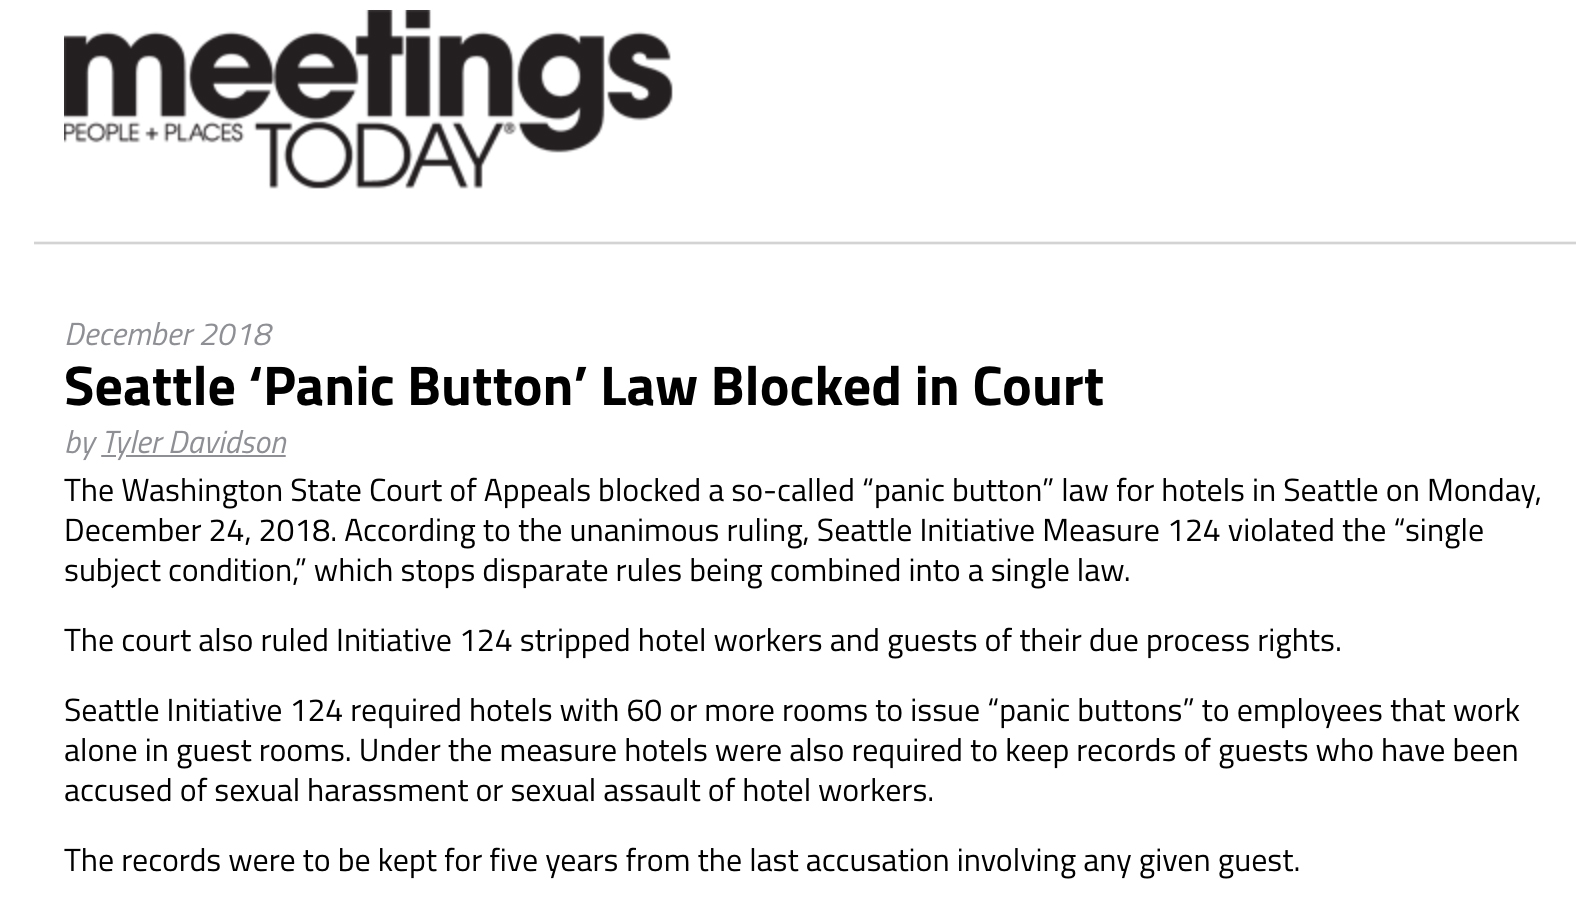 Seattle 'Panic Button' Law Blocked in Court | Meetings Today